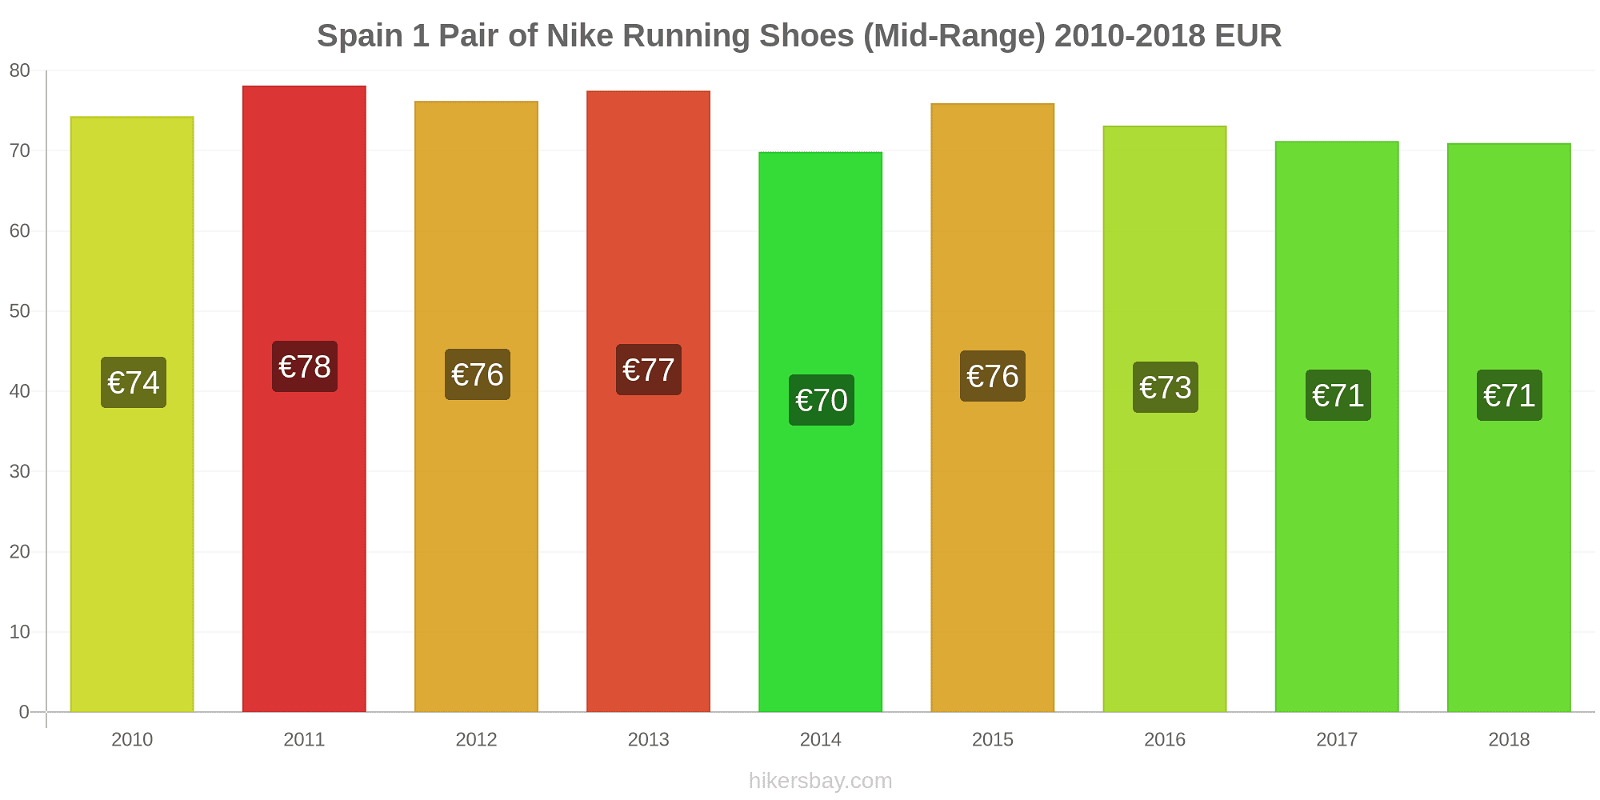 Spain price changes 1 Pair of Nike Running Shoes (Mid-Range) hikersbay.com